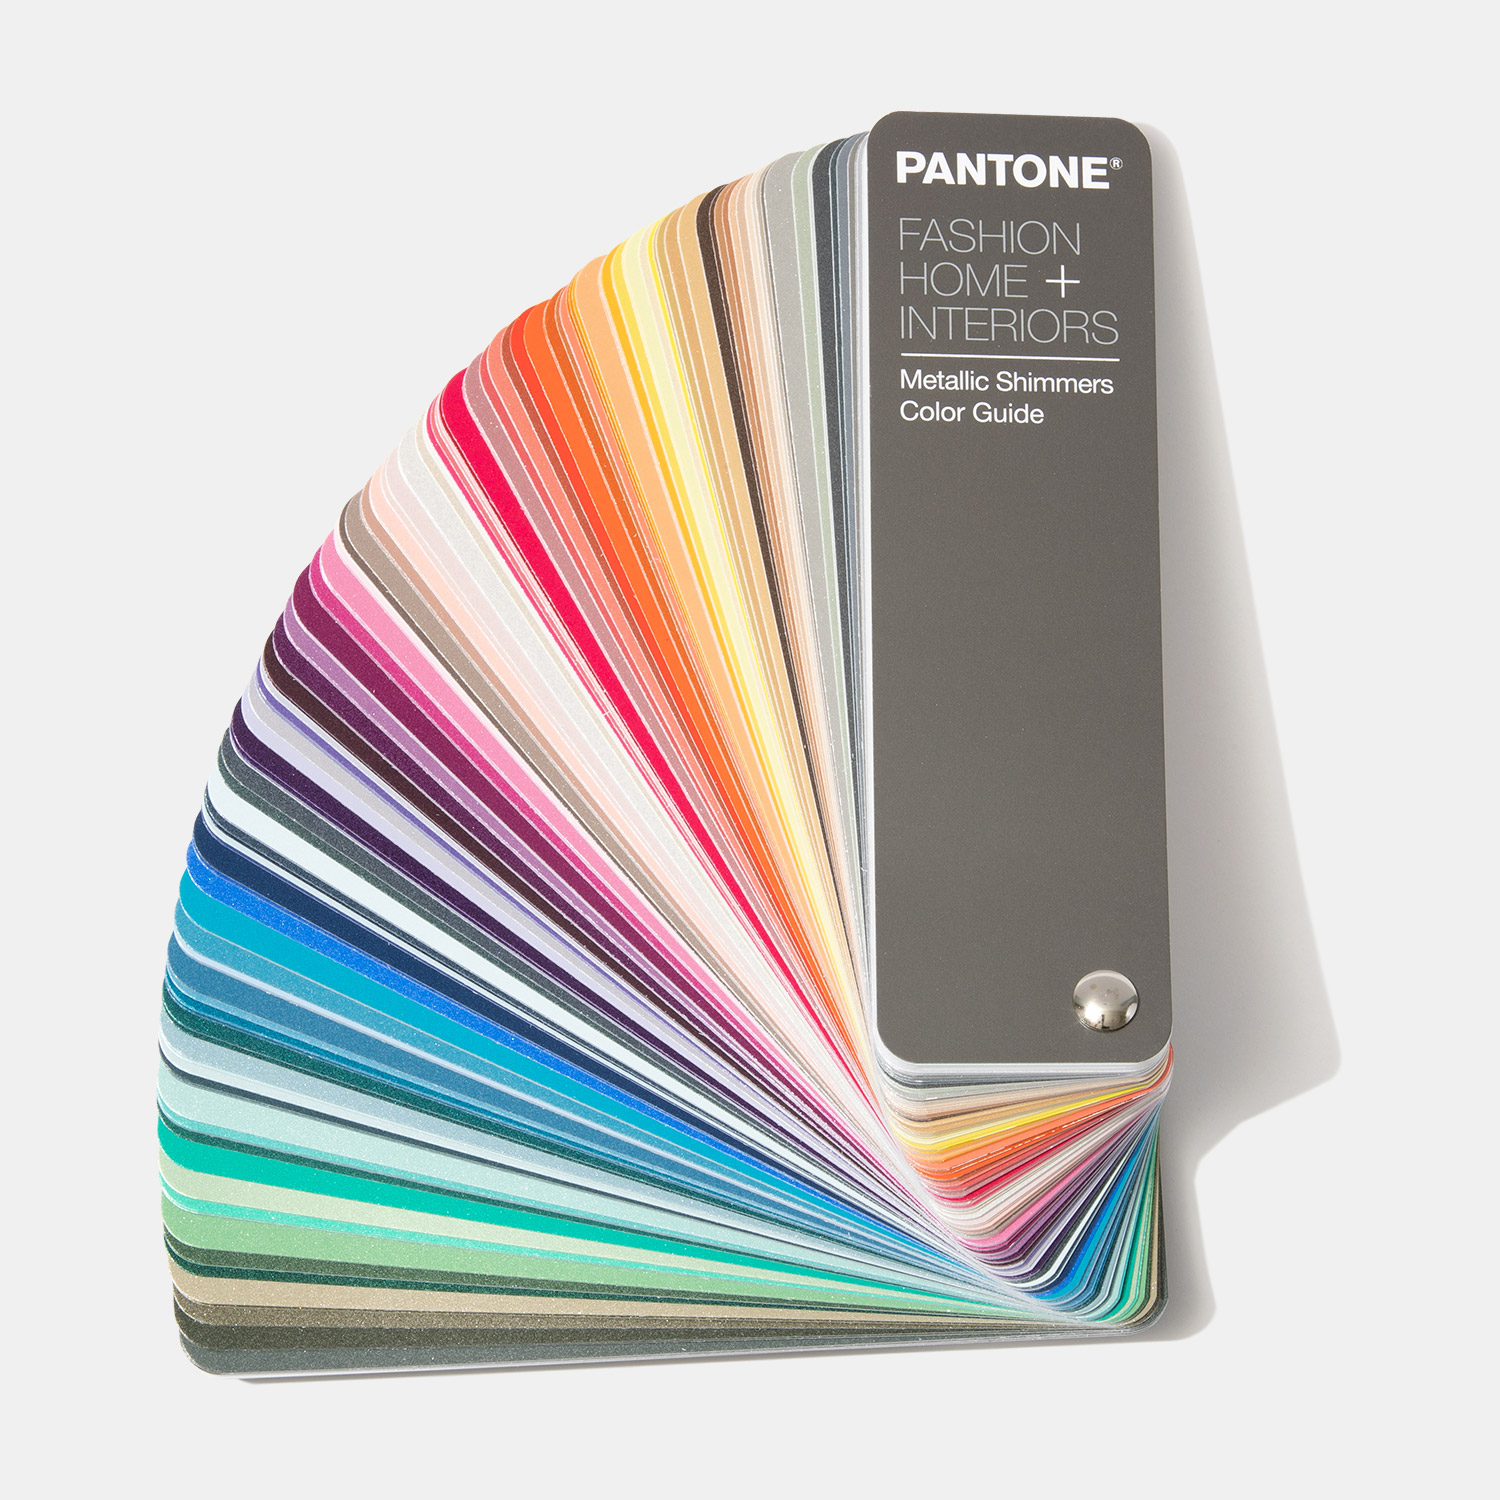 Pantone Fashion, Home + Interiors Metallic Shimmers Color Guide